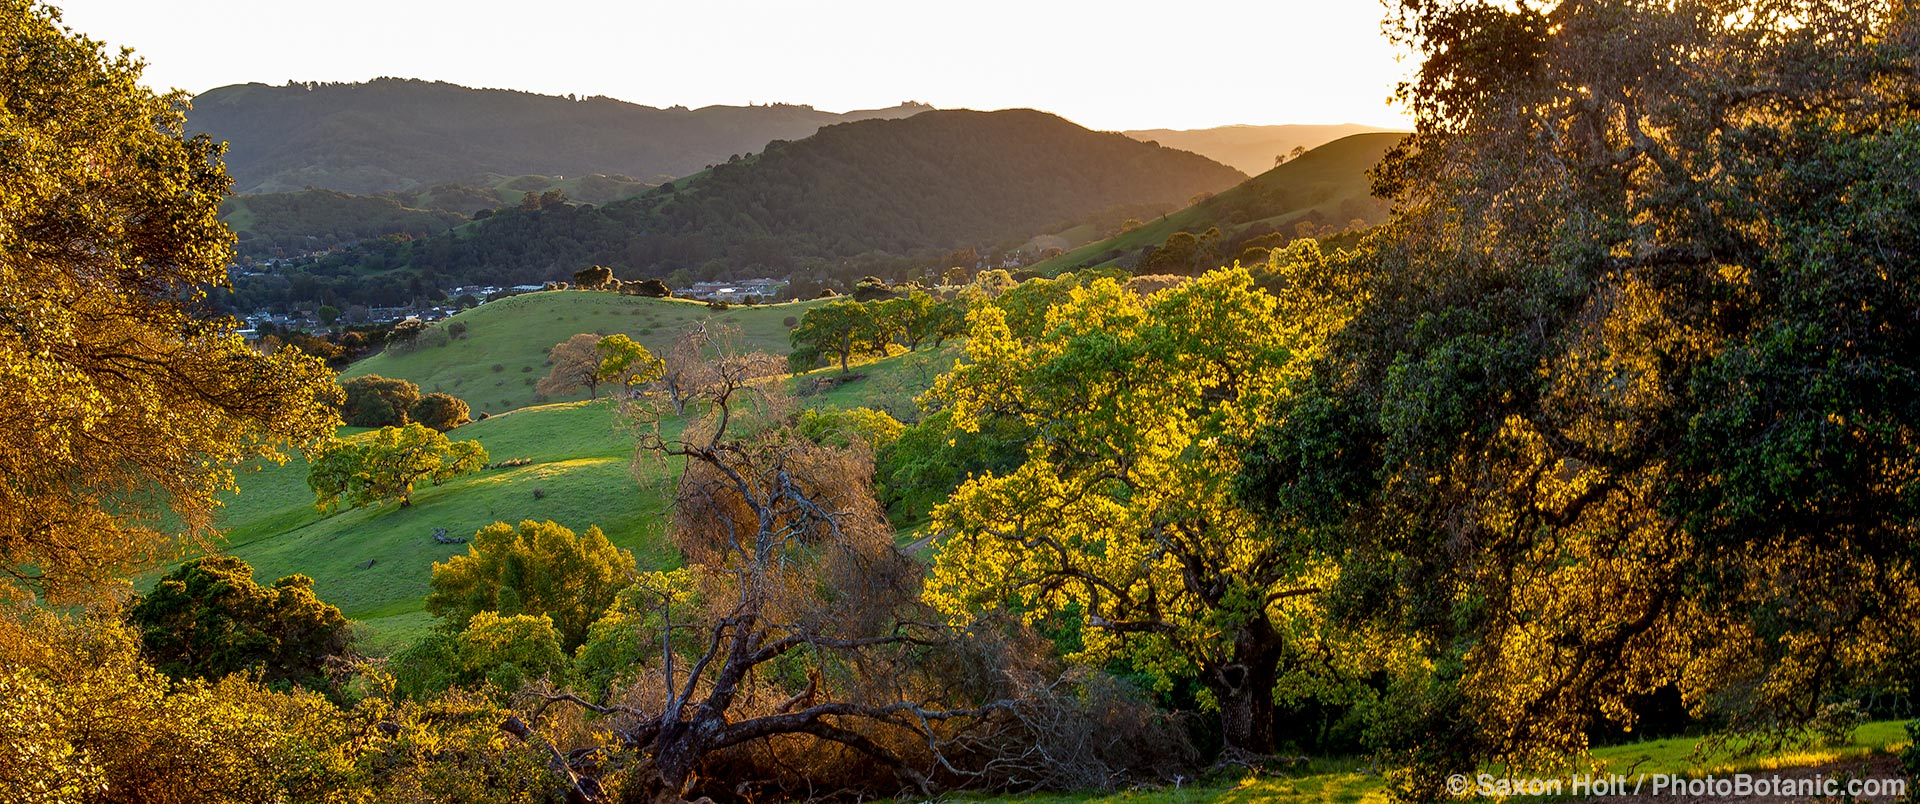 California Coastal Range with Oak trees (Quercus lobata) and rolling hills on Mt. Burdell State Park, Novato, California